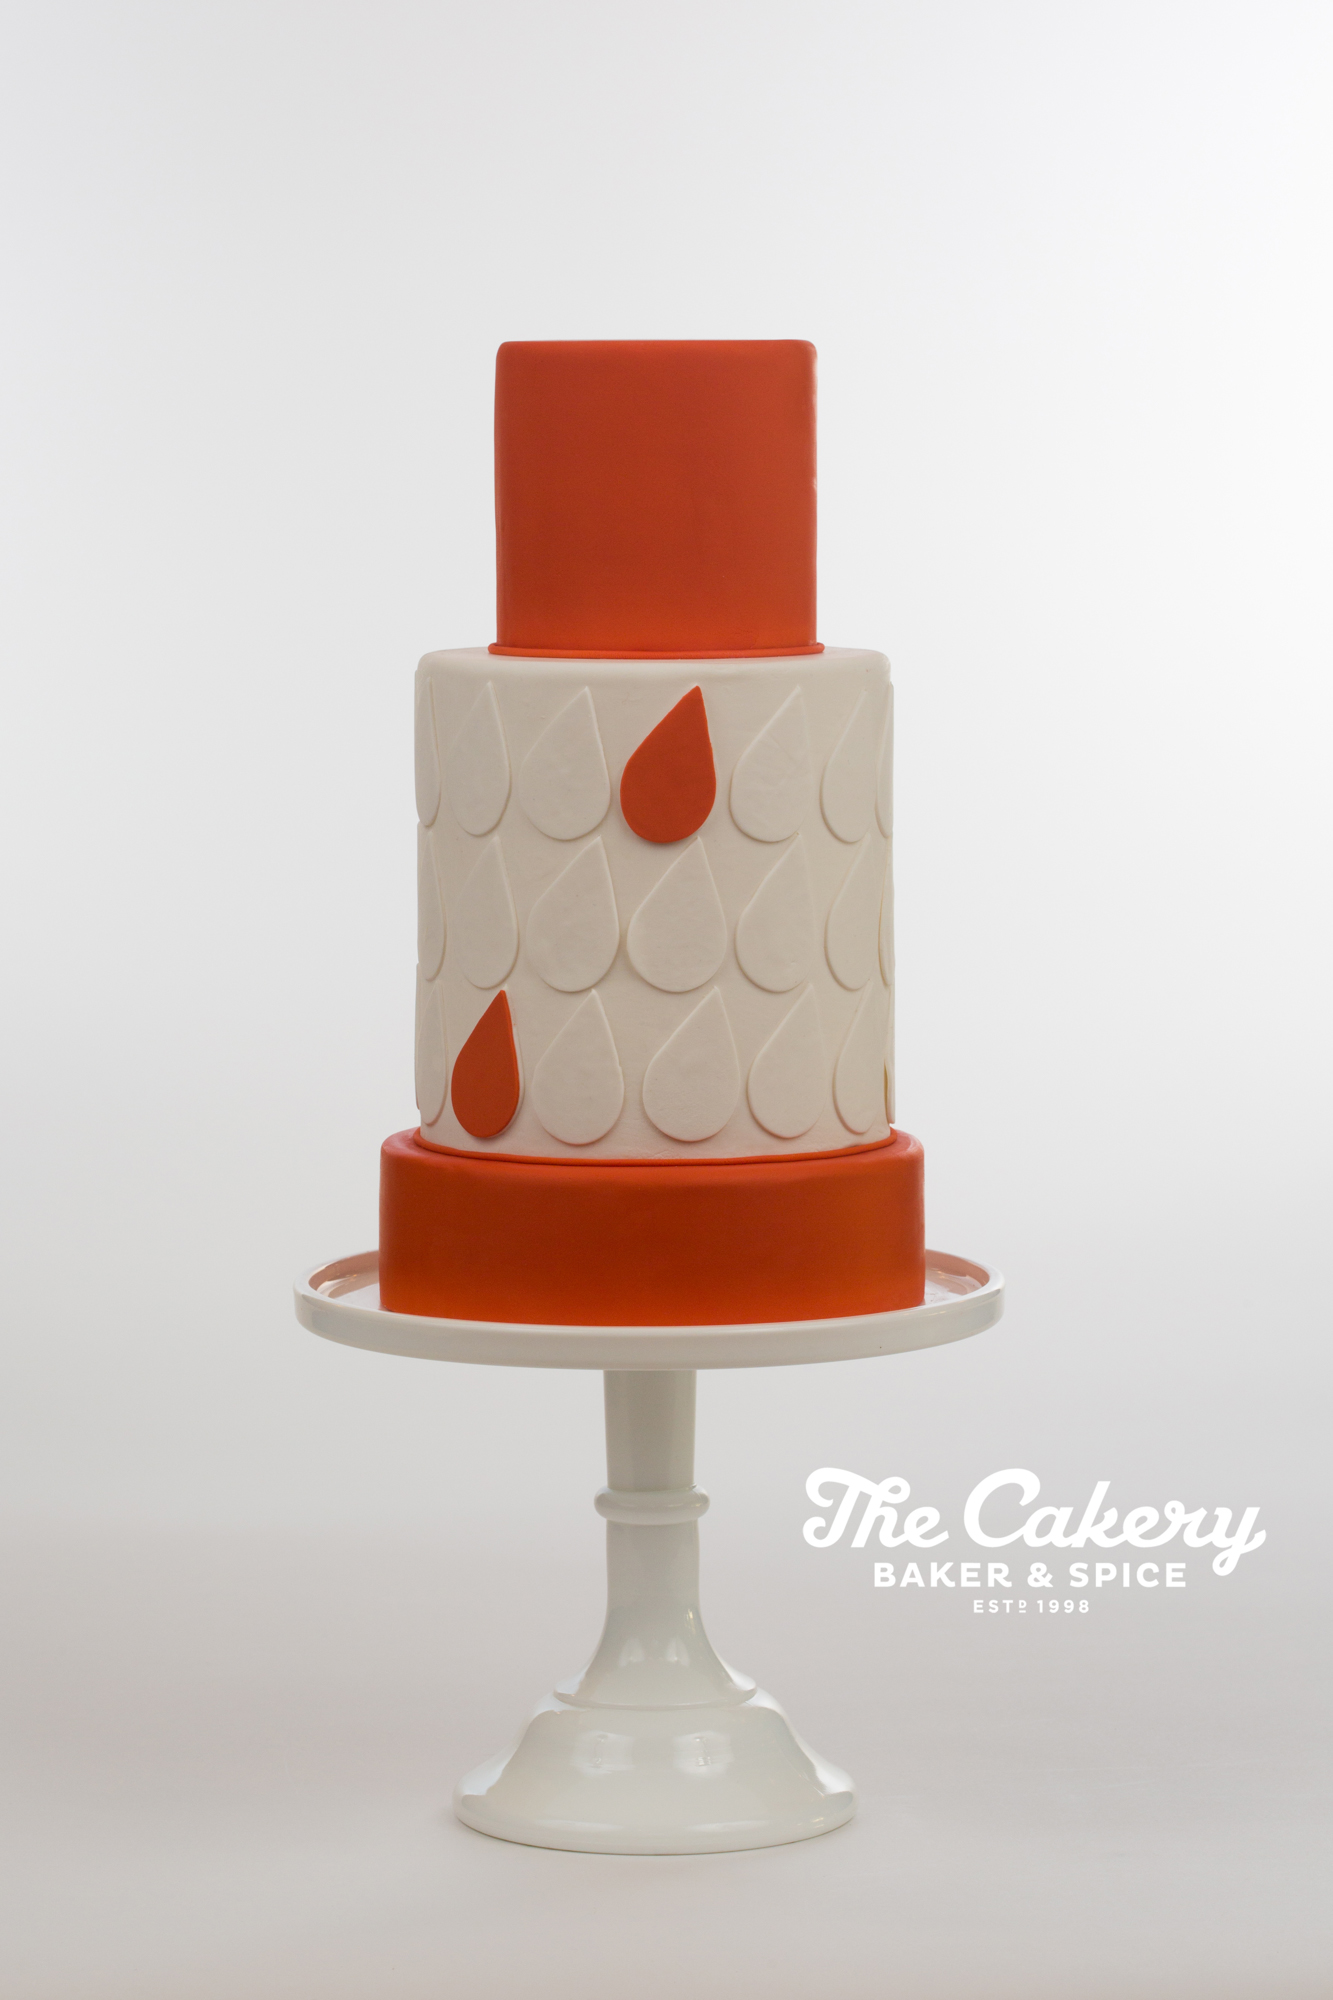 Baker and Spice - Wedding Cakes - 00168 logo.jpg